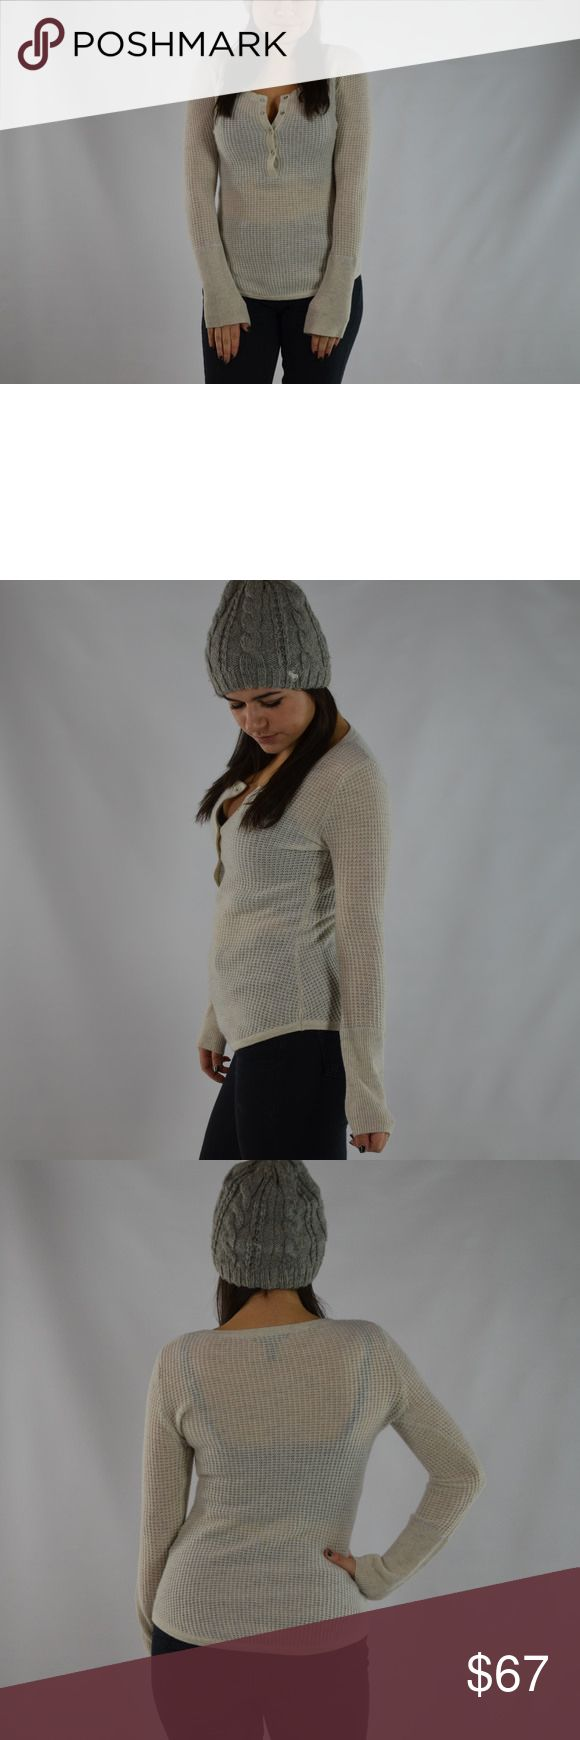 AQUA CASHMERE Women's XS Cream and Gray Blend Top Wear this women's, extra small, cream and gray blend Aqua Cashmere top and you'll feel warm and cozy for the Fall or Winter. The cream and gray color allows you to wear this long sleeve top with any outfit! SKU in warehouse is # 13517 Aqua Tops Tees - Long Sleeve